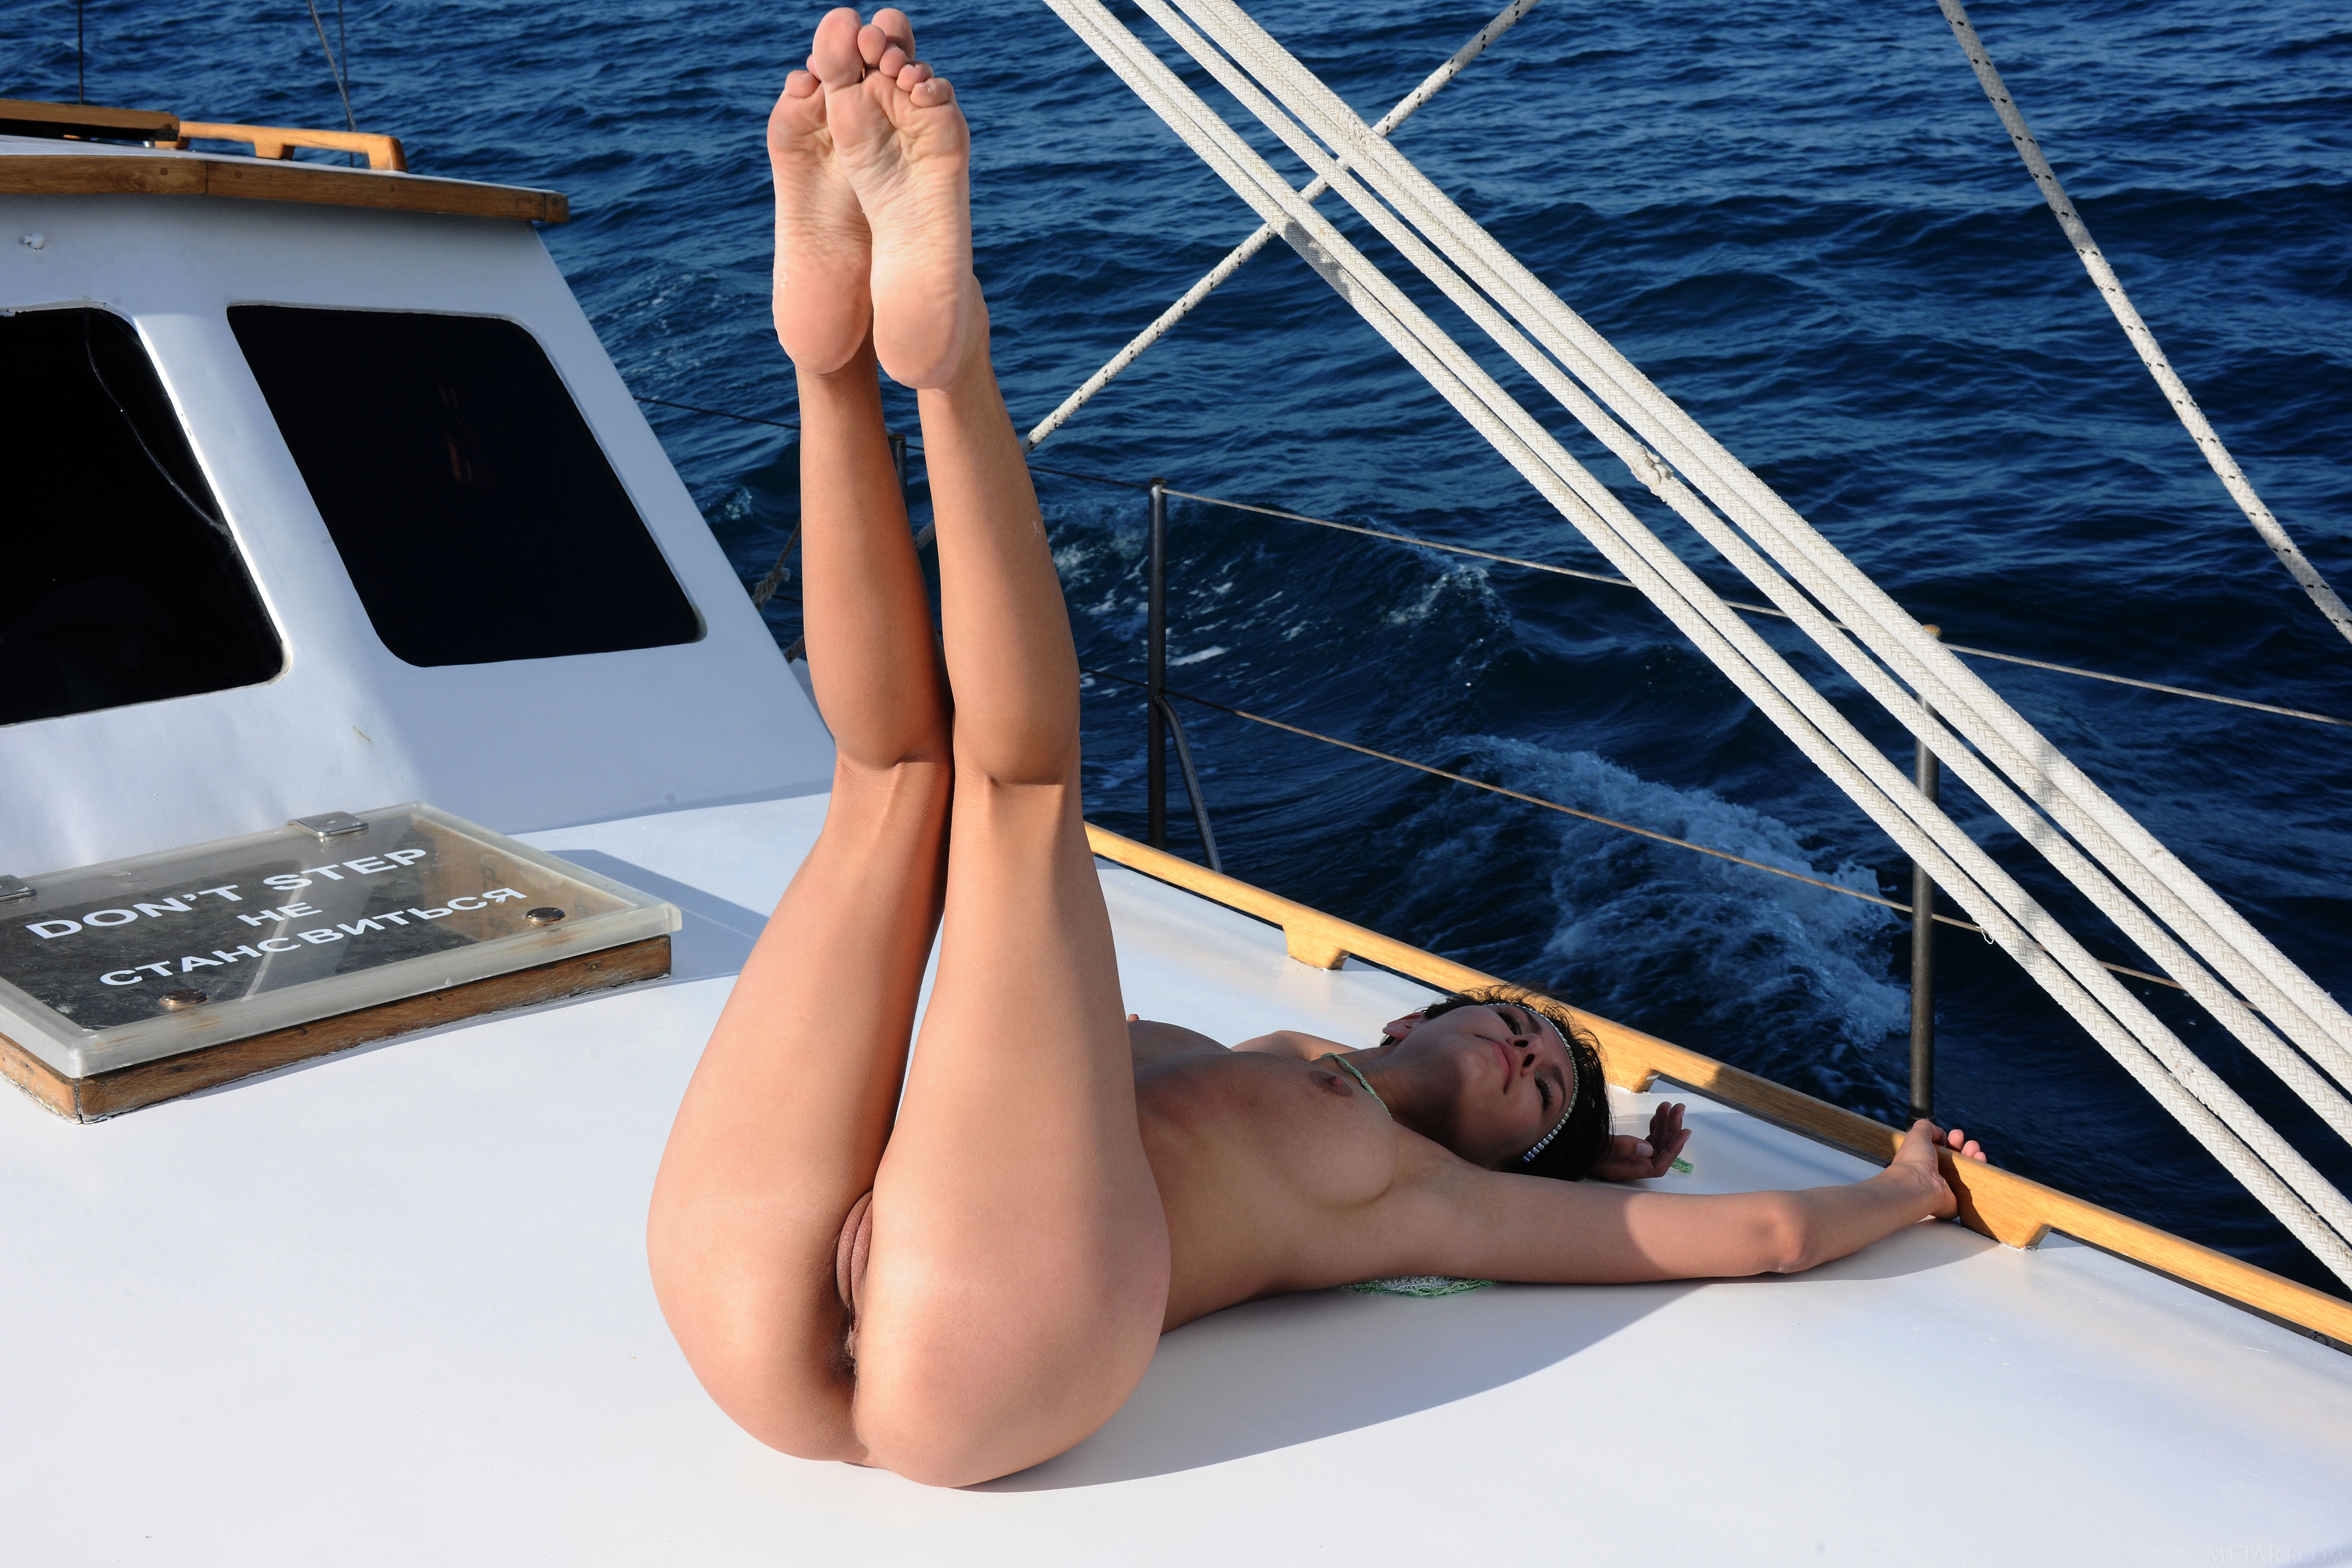 boat sexy pussy girl